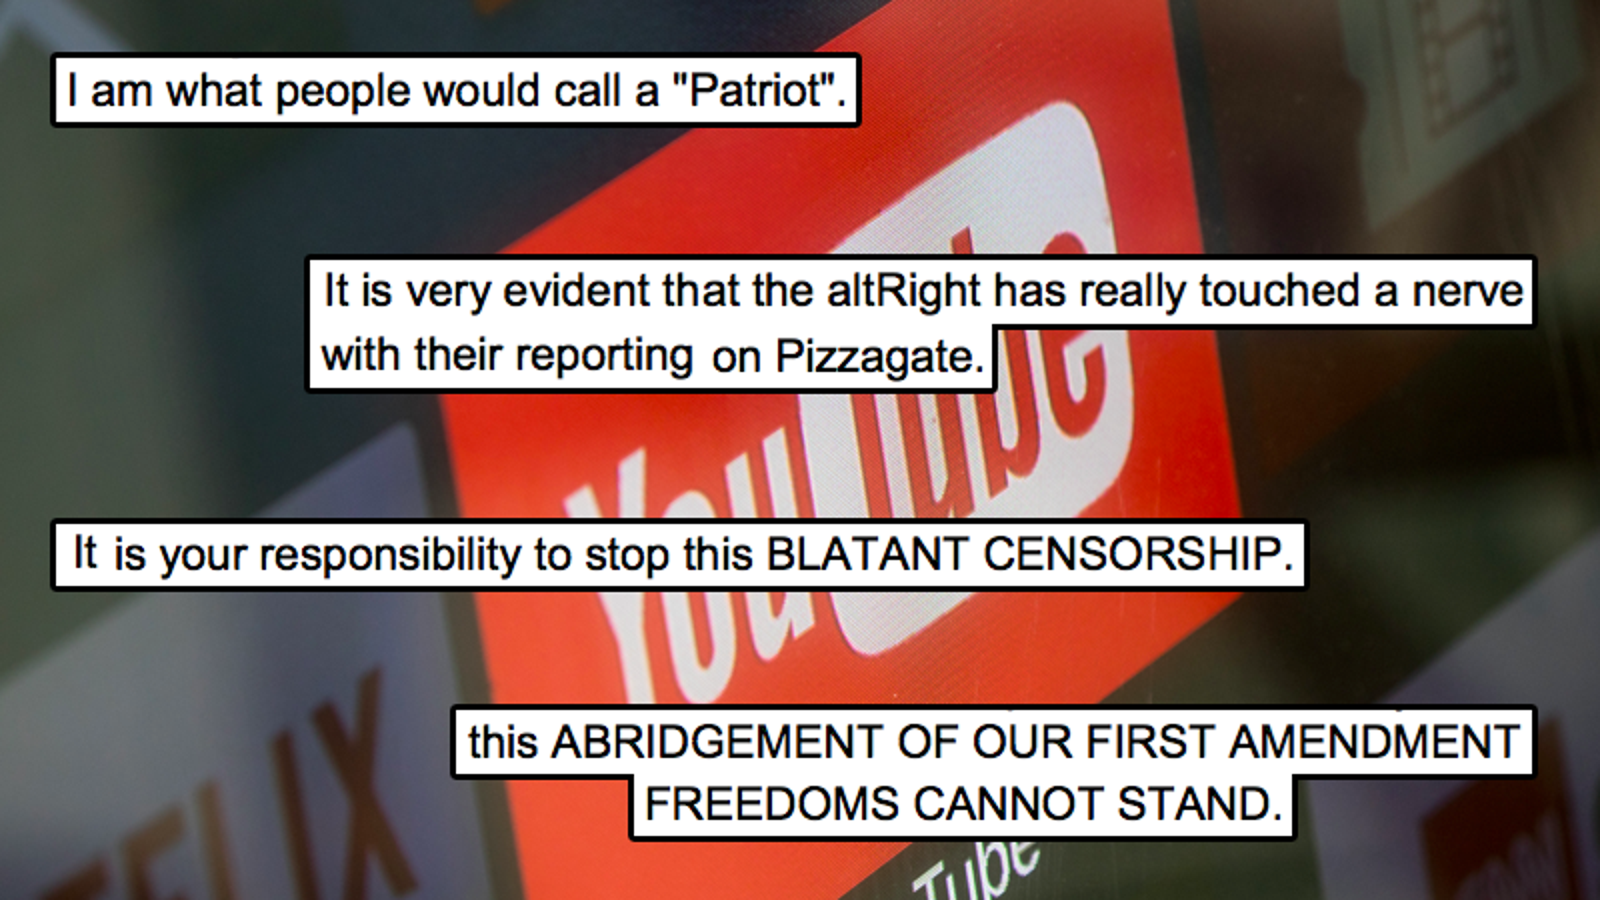 Stop This BLATANT CENSORSHIP': The Poor, Confused Souls